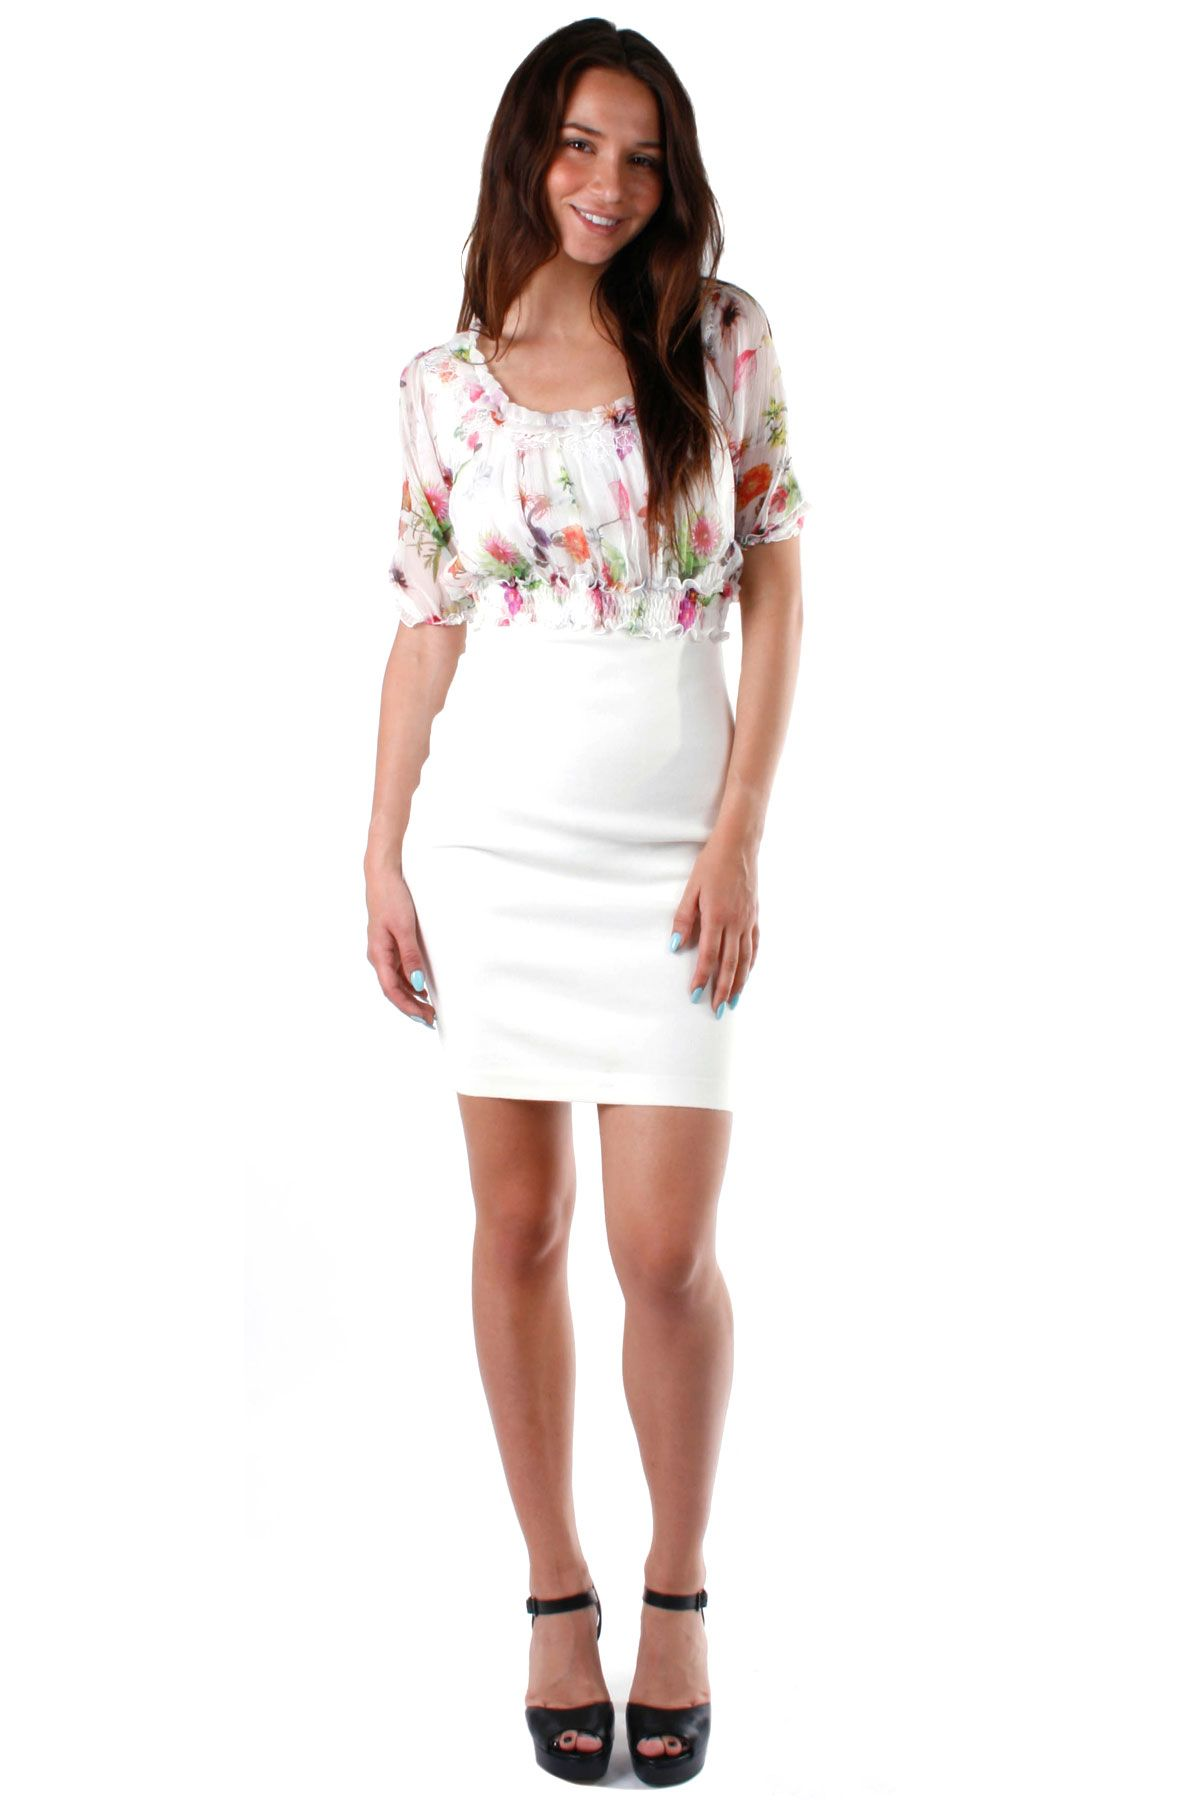 Blumarine White-cream Floral Shealt Dress